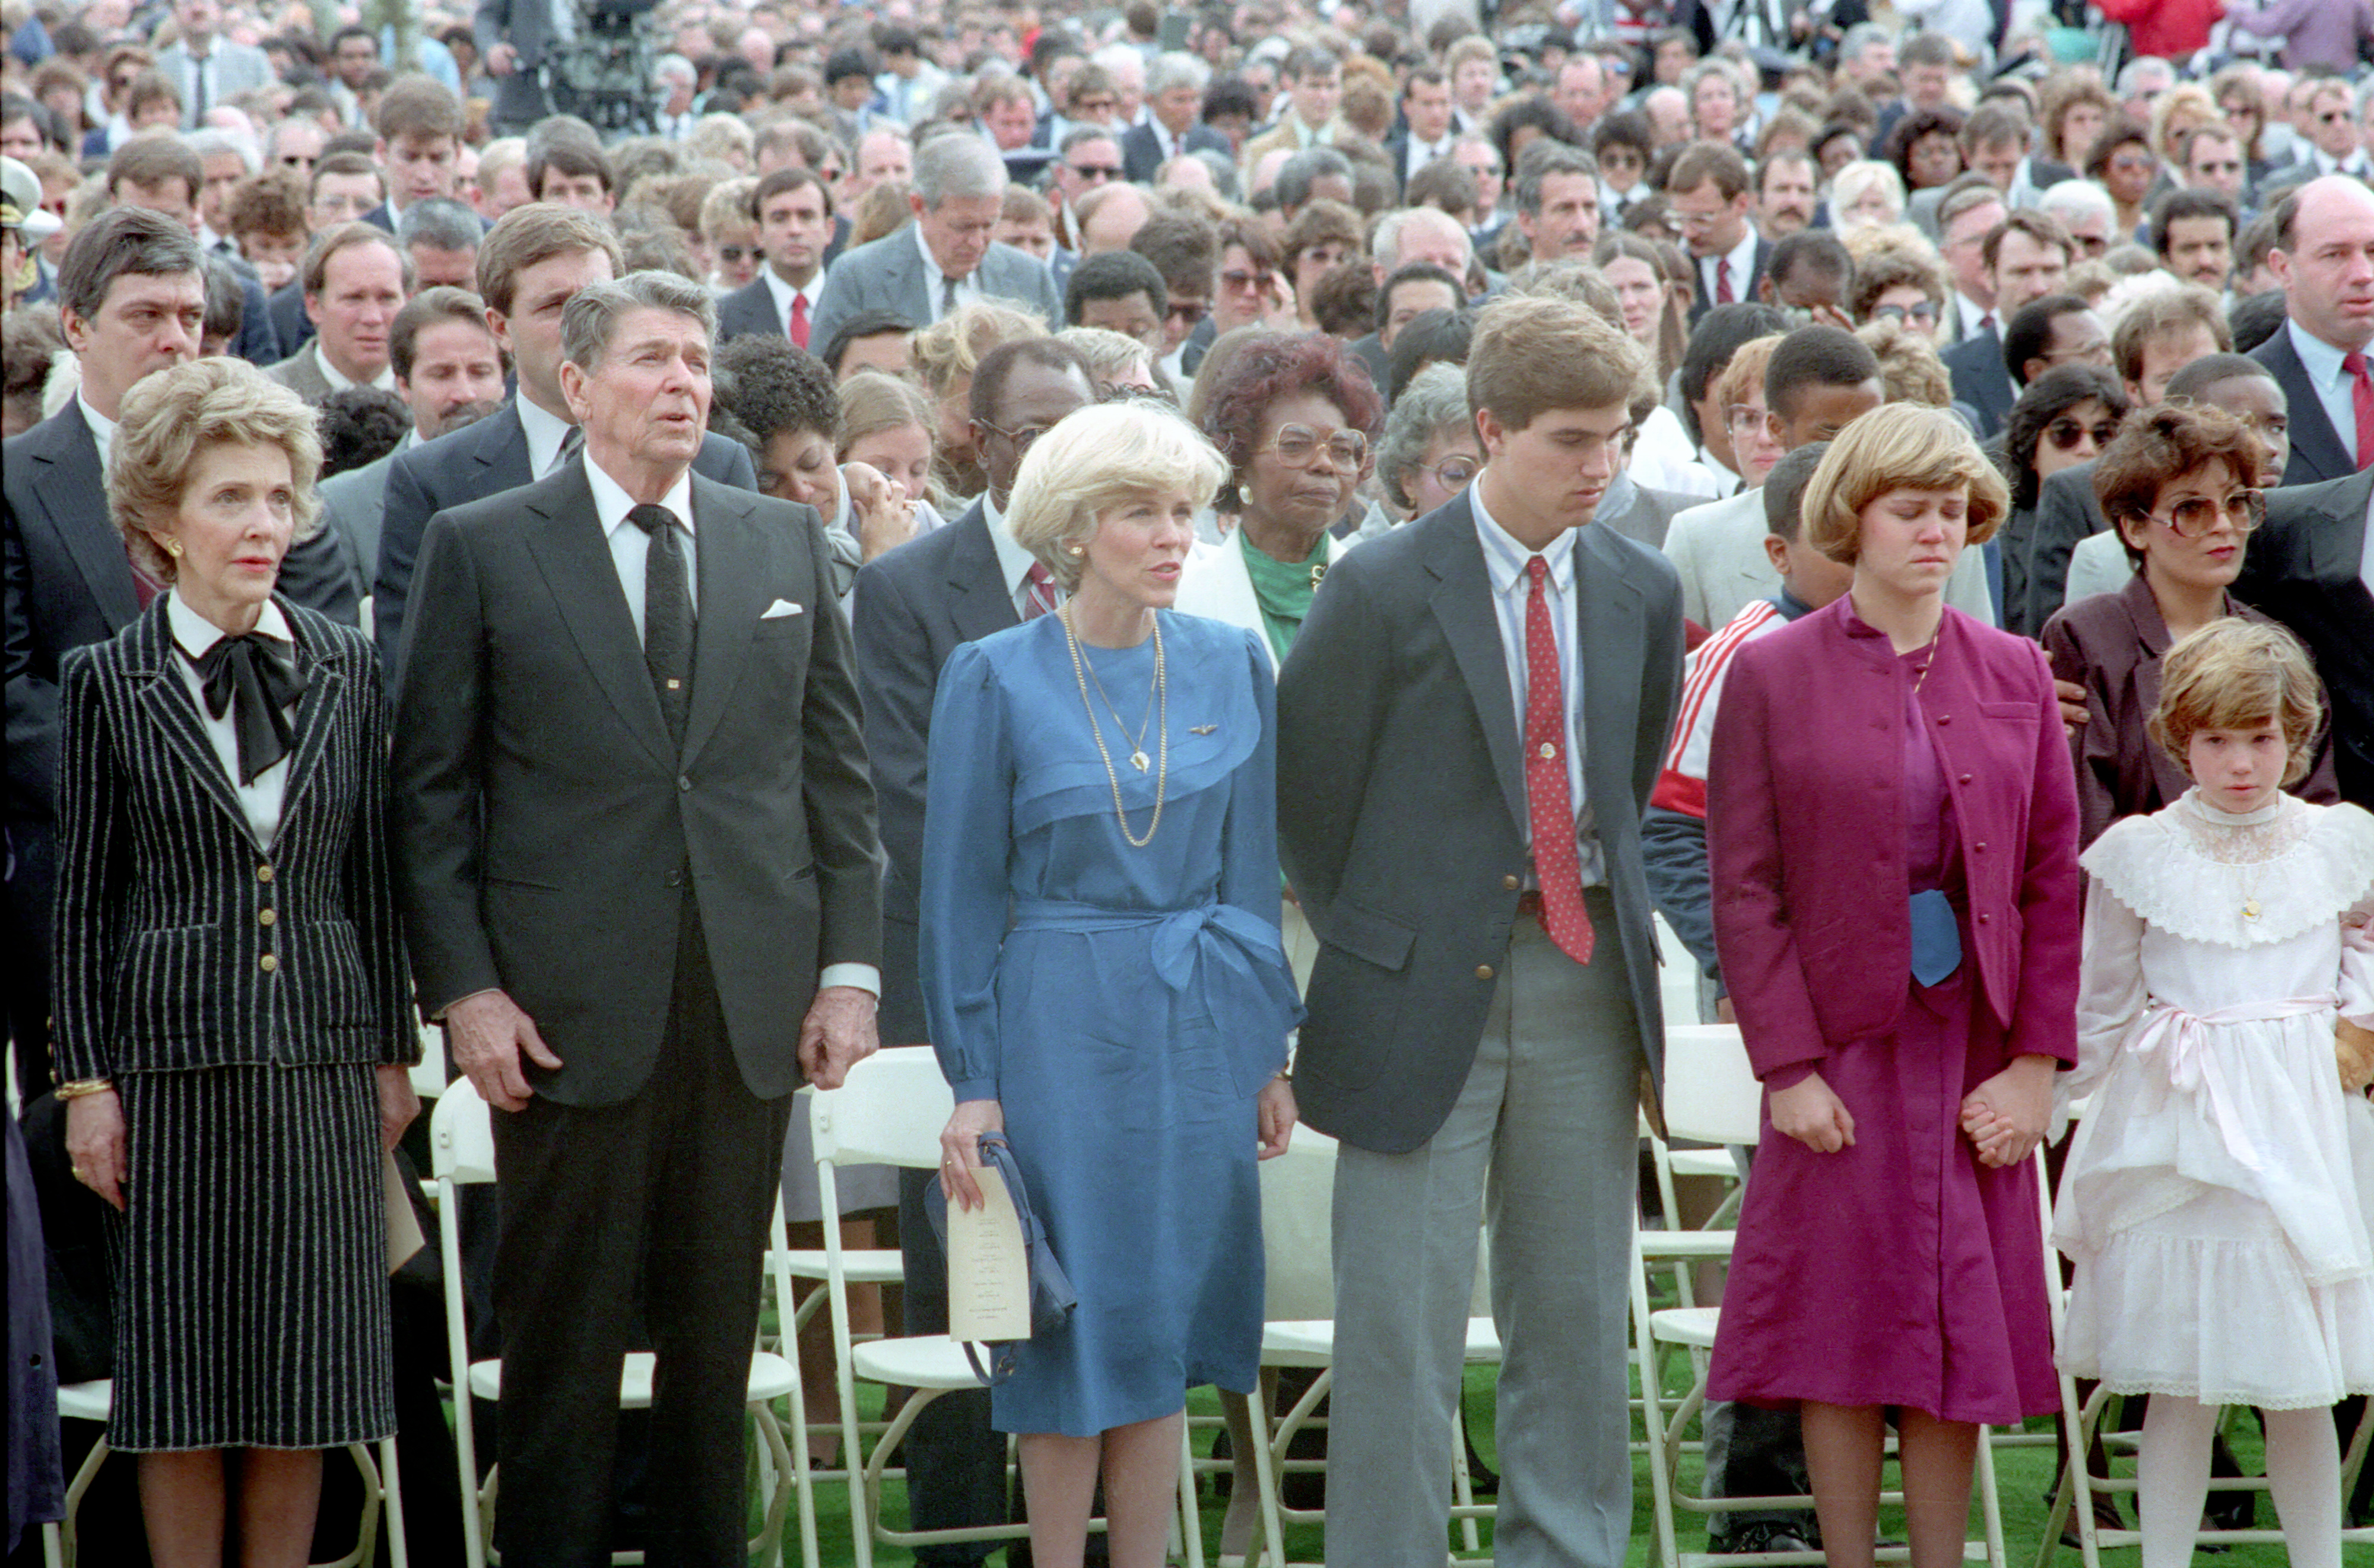 Reagans attend Challenger memorial service